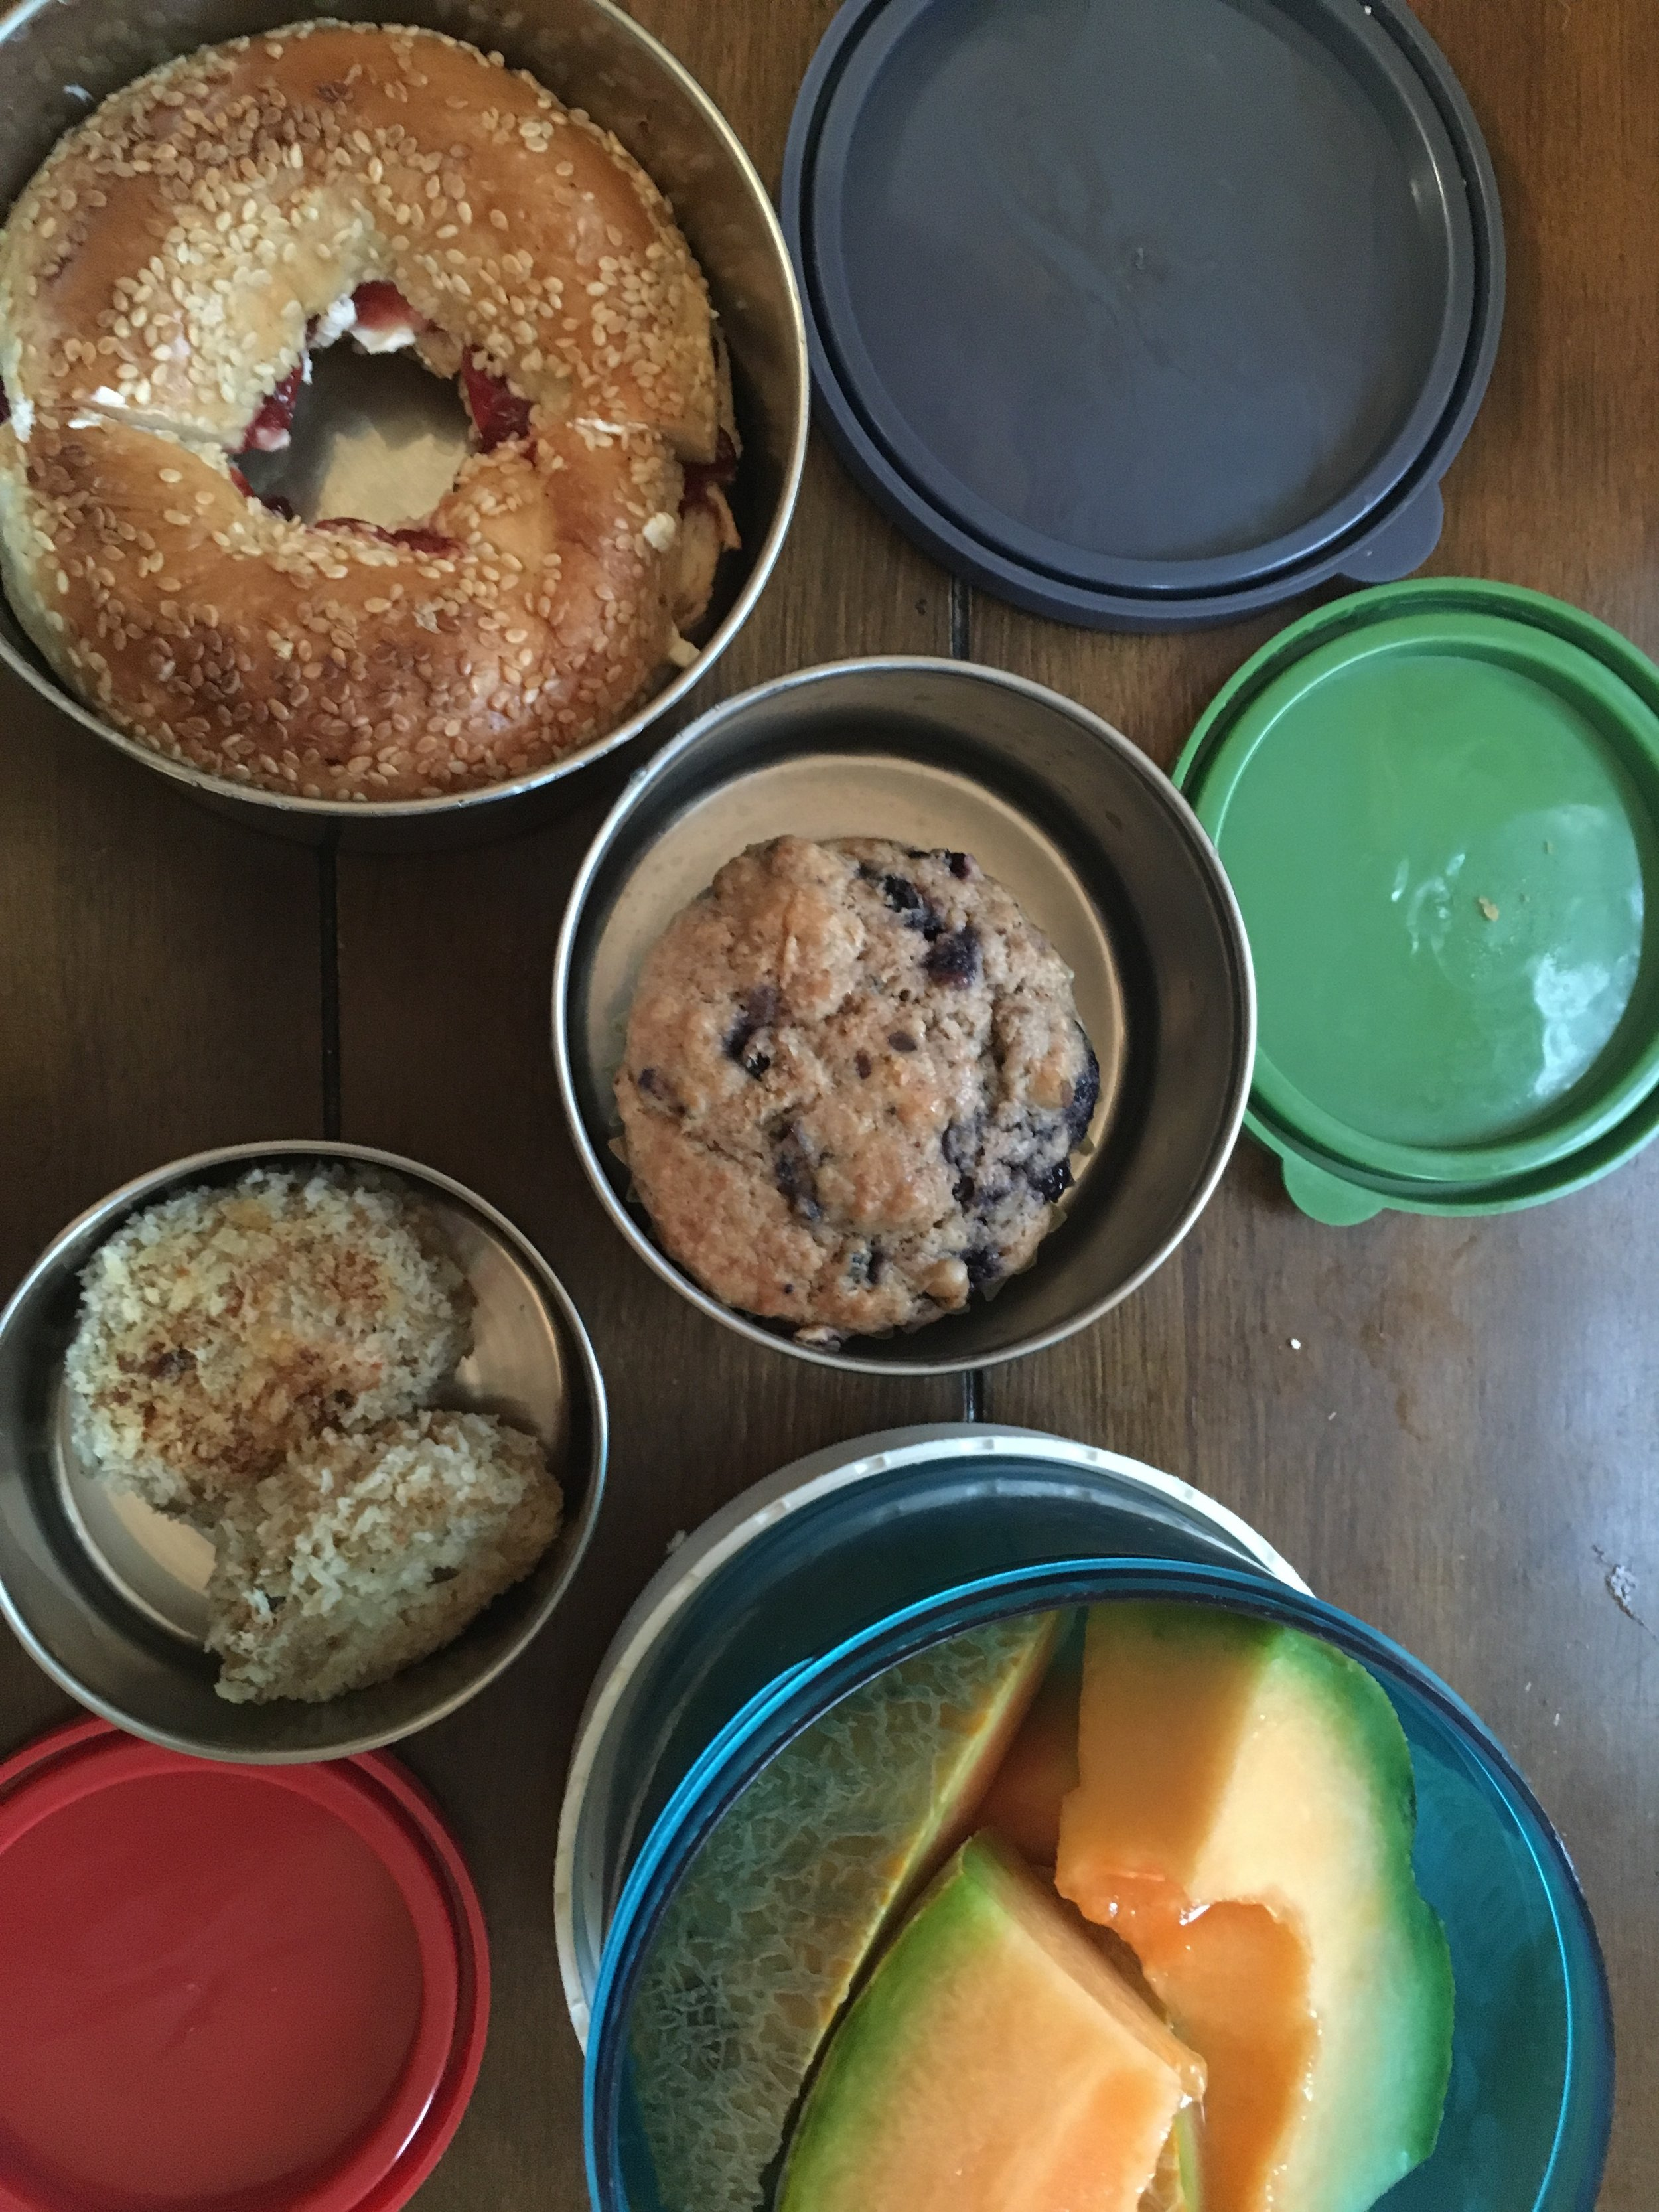 Lunch Day 3. From top: cream cheese and jam on bagel, blueberry flax muffin, quinoa-tuna cakes, and cantaloupe. (I also packed a muffin and cantaloupe for snacks on Days 1 and 2.)